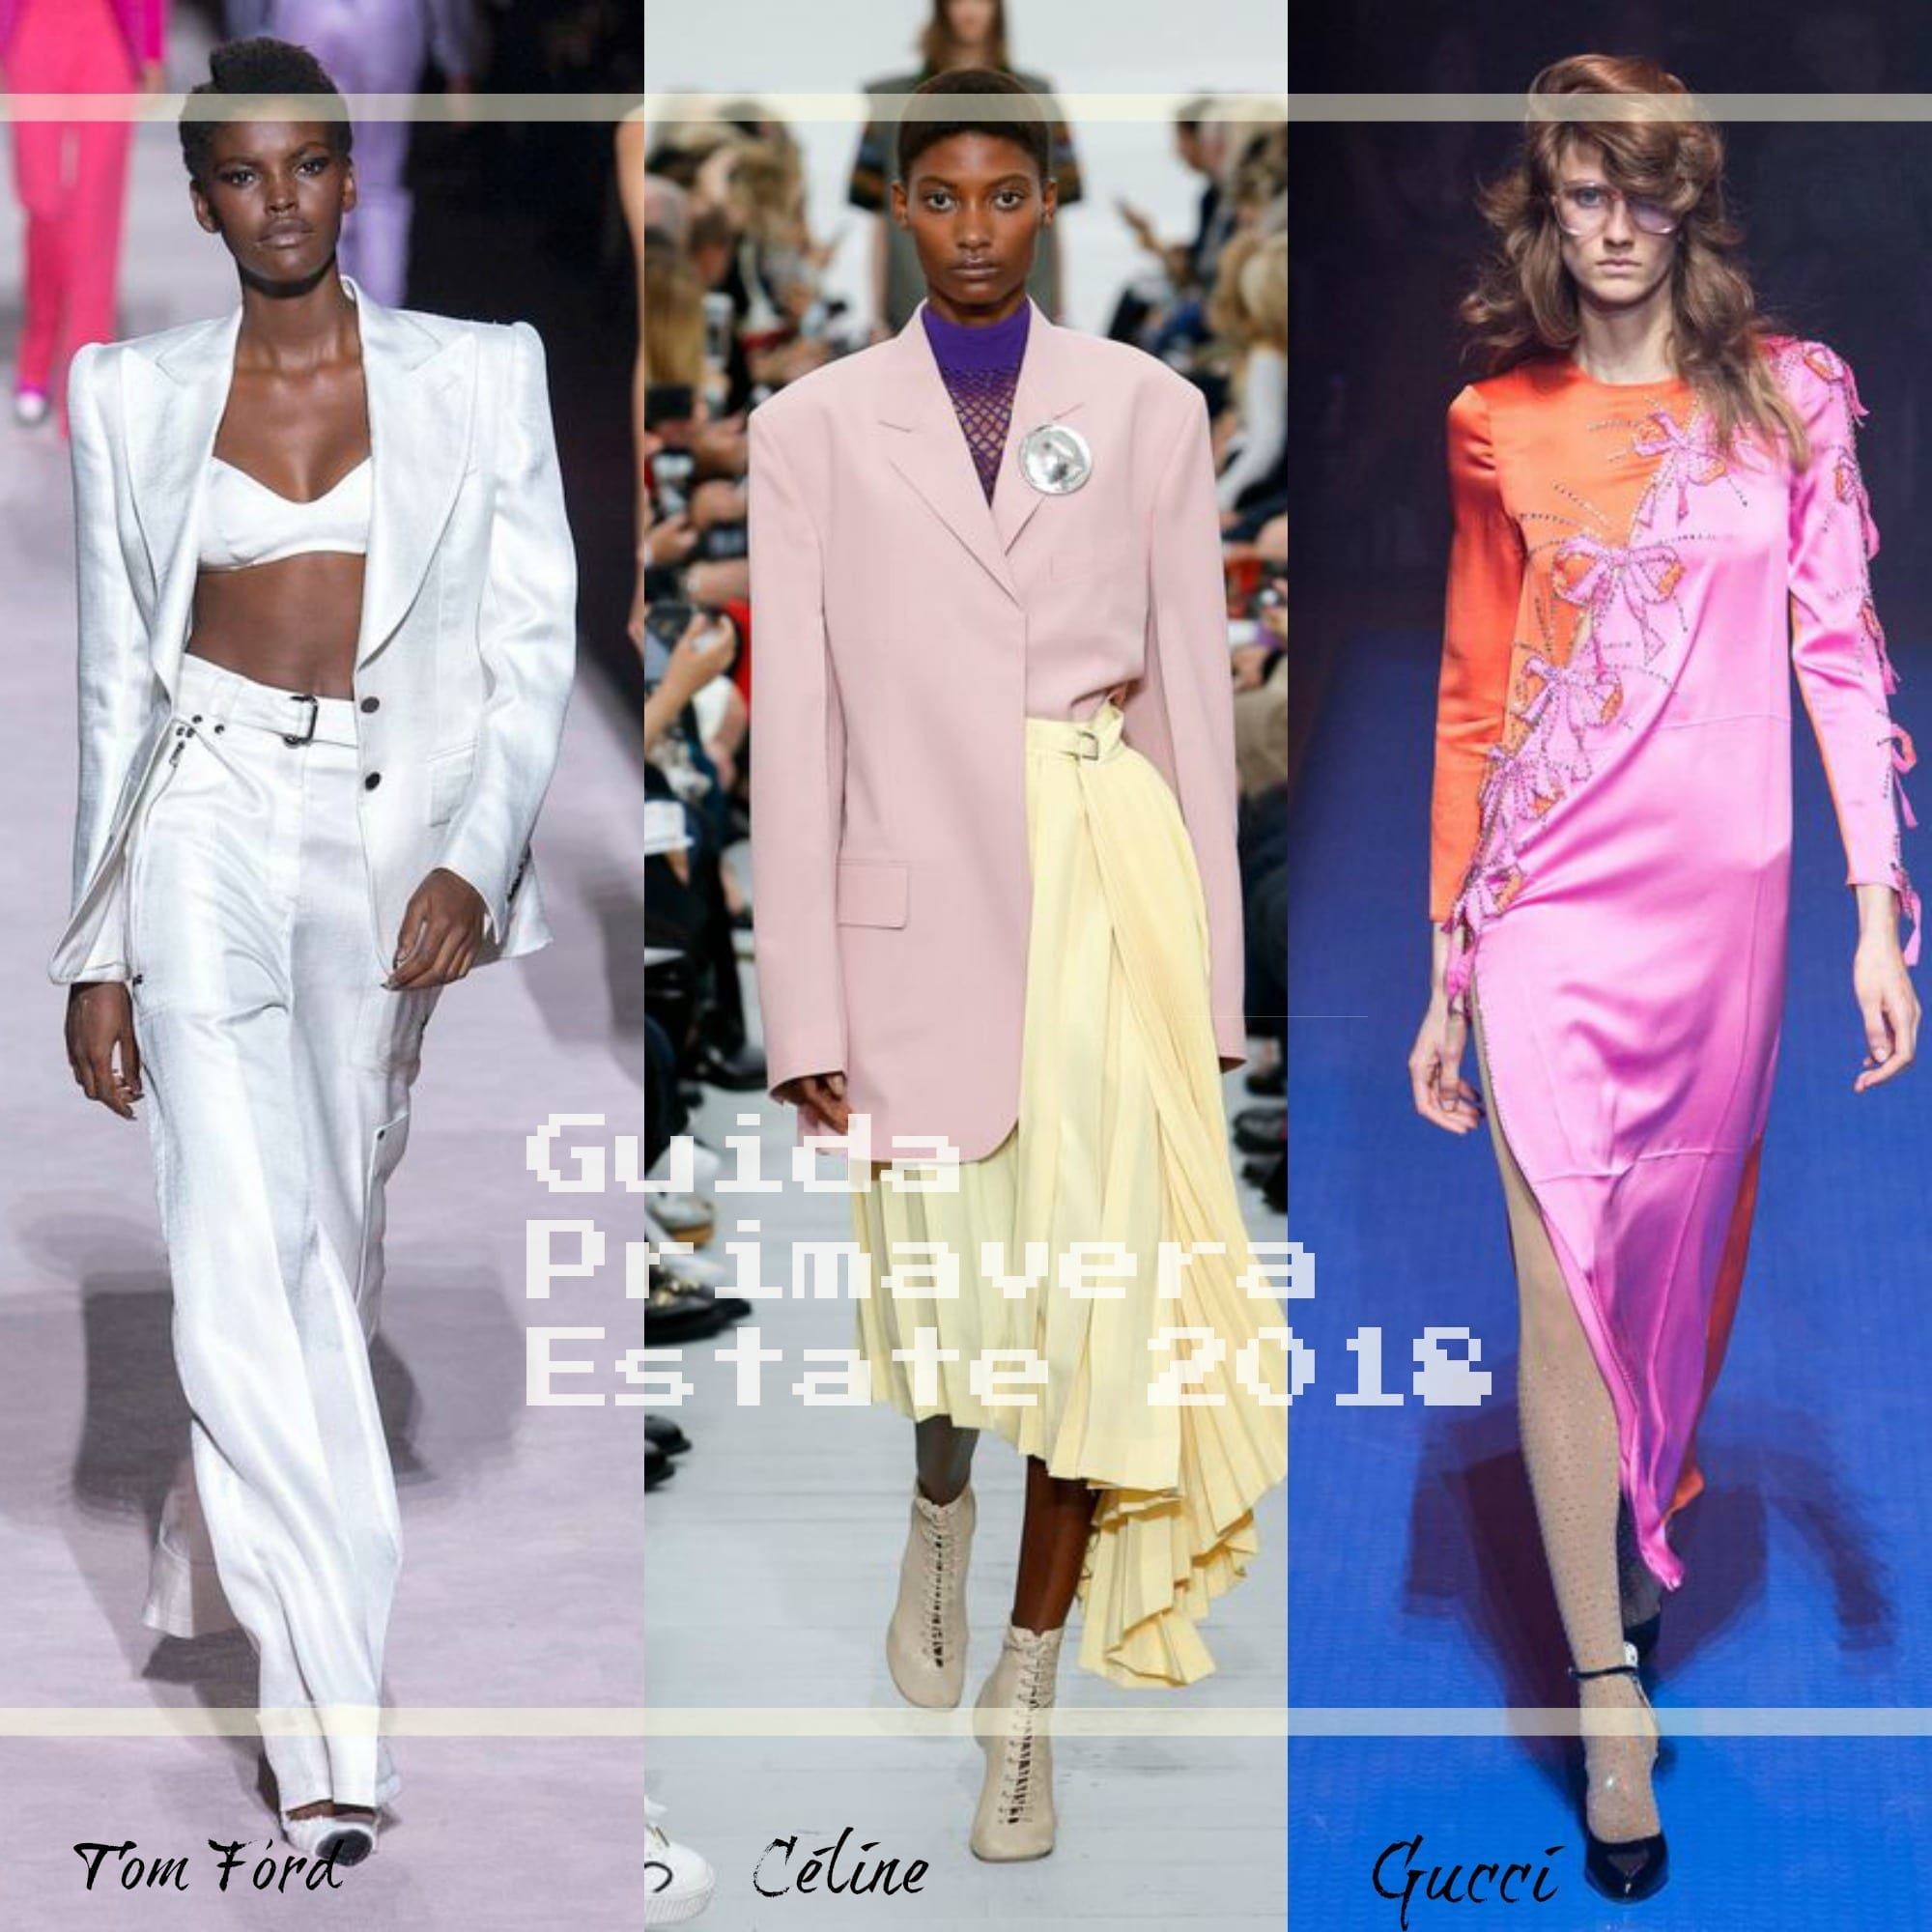 Moda primavera estate 2018, tendenze moda 2018, cosa andrà di moda estate 2018, come ci vestiremo primavera 2018, theladycracy.it, elisa bellino, fashion blog 2018, blogger moda 2018, blogger instagram 2018, blogger moda milano 2018